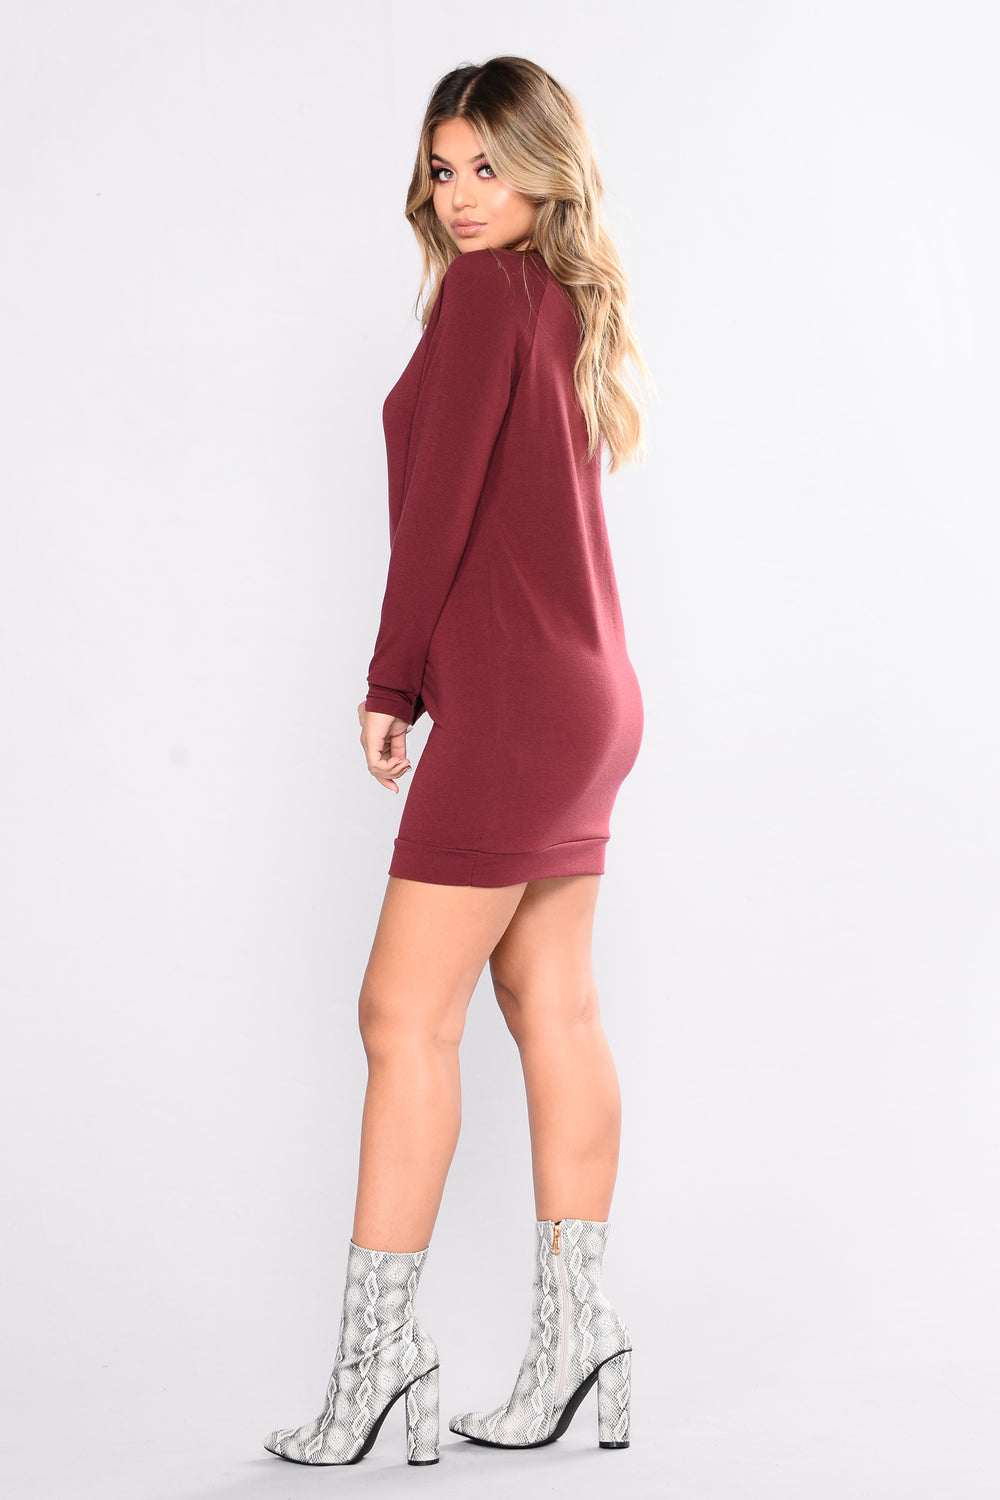 Giving Attitude Sweater Tunic - Burgundy